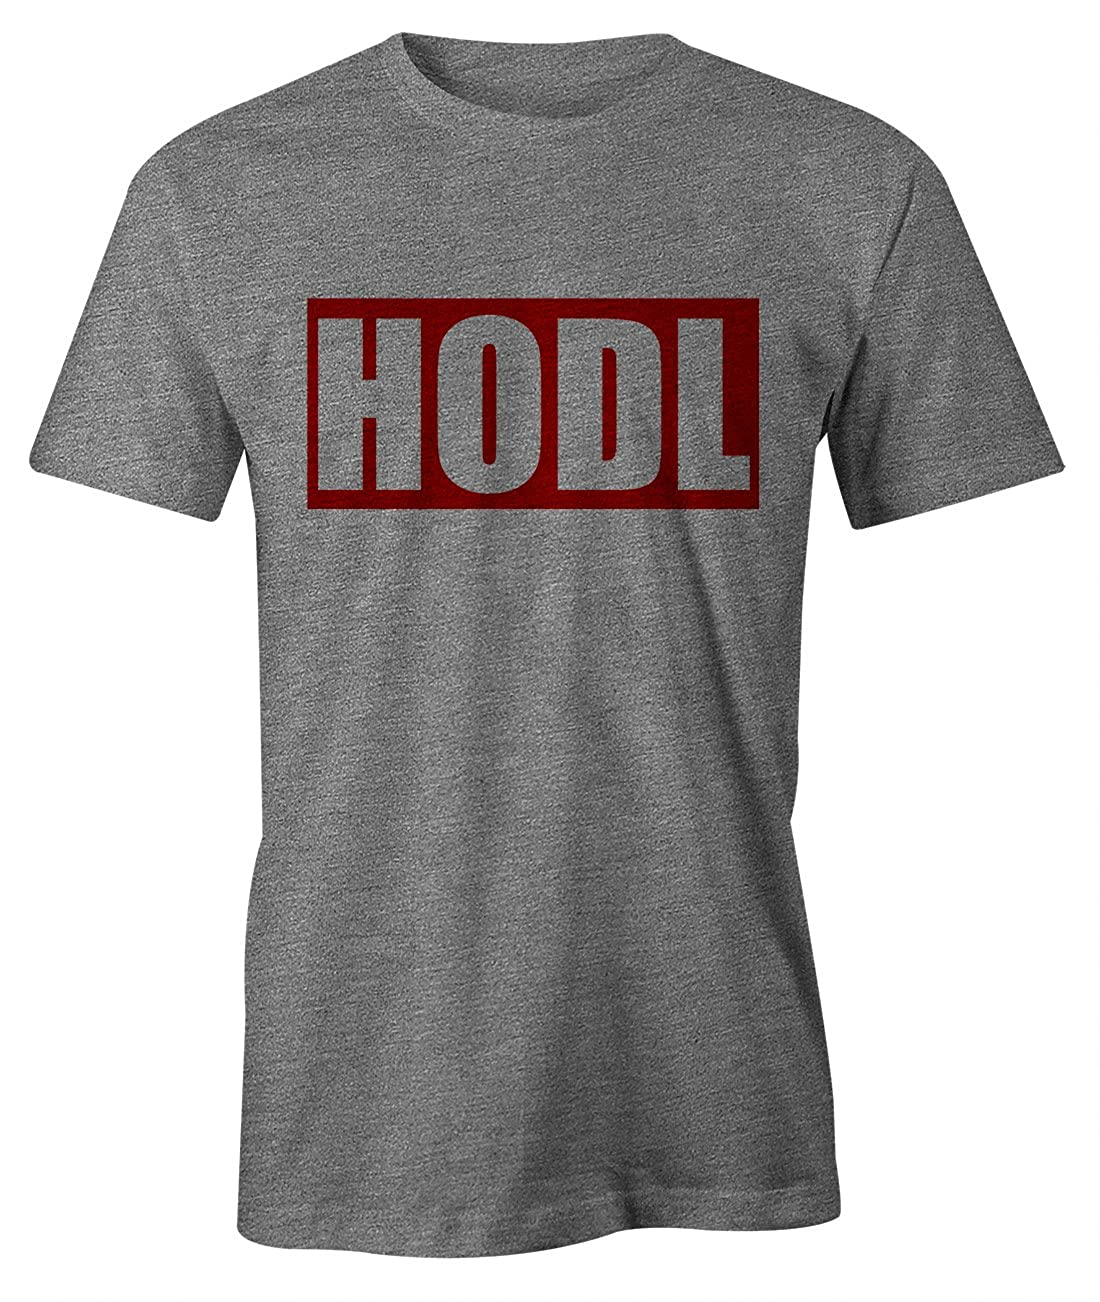 RiotBunny HODL Bitcoin Cryptocurrency BTC LTC Digital ...